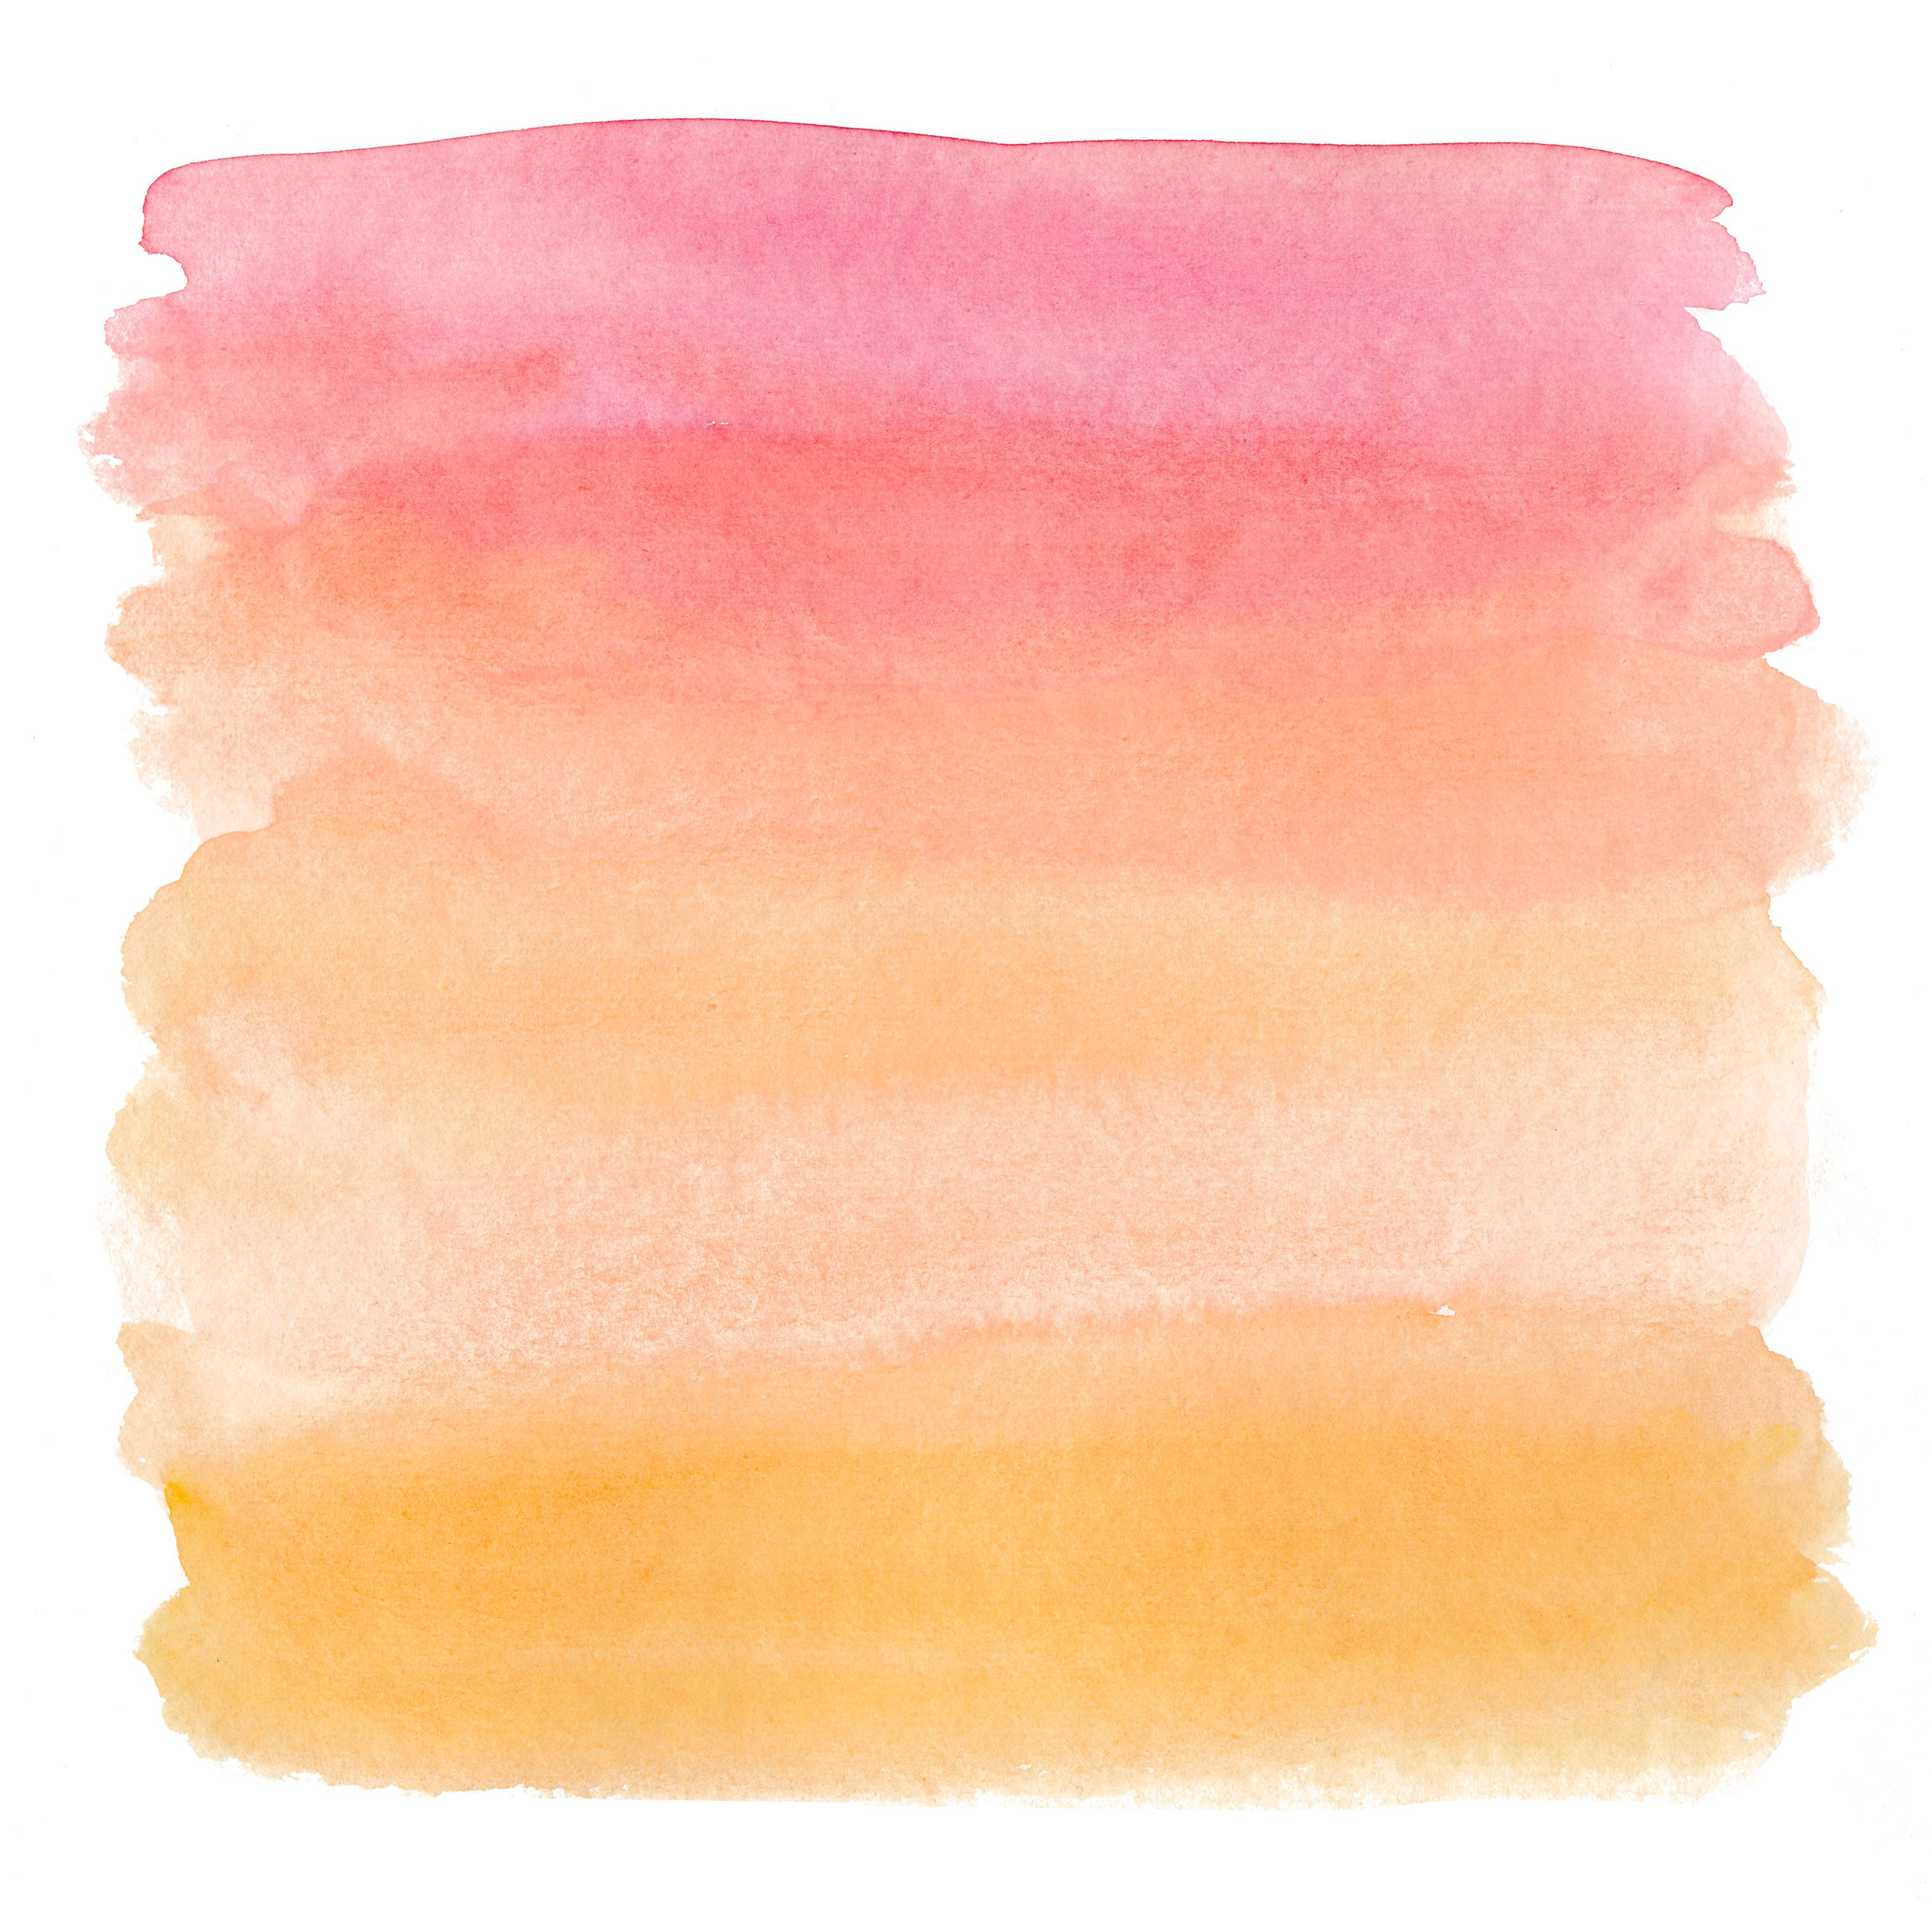 Premier Orange Pink Watercolor Background Watercolor Ombre